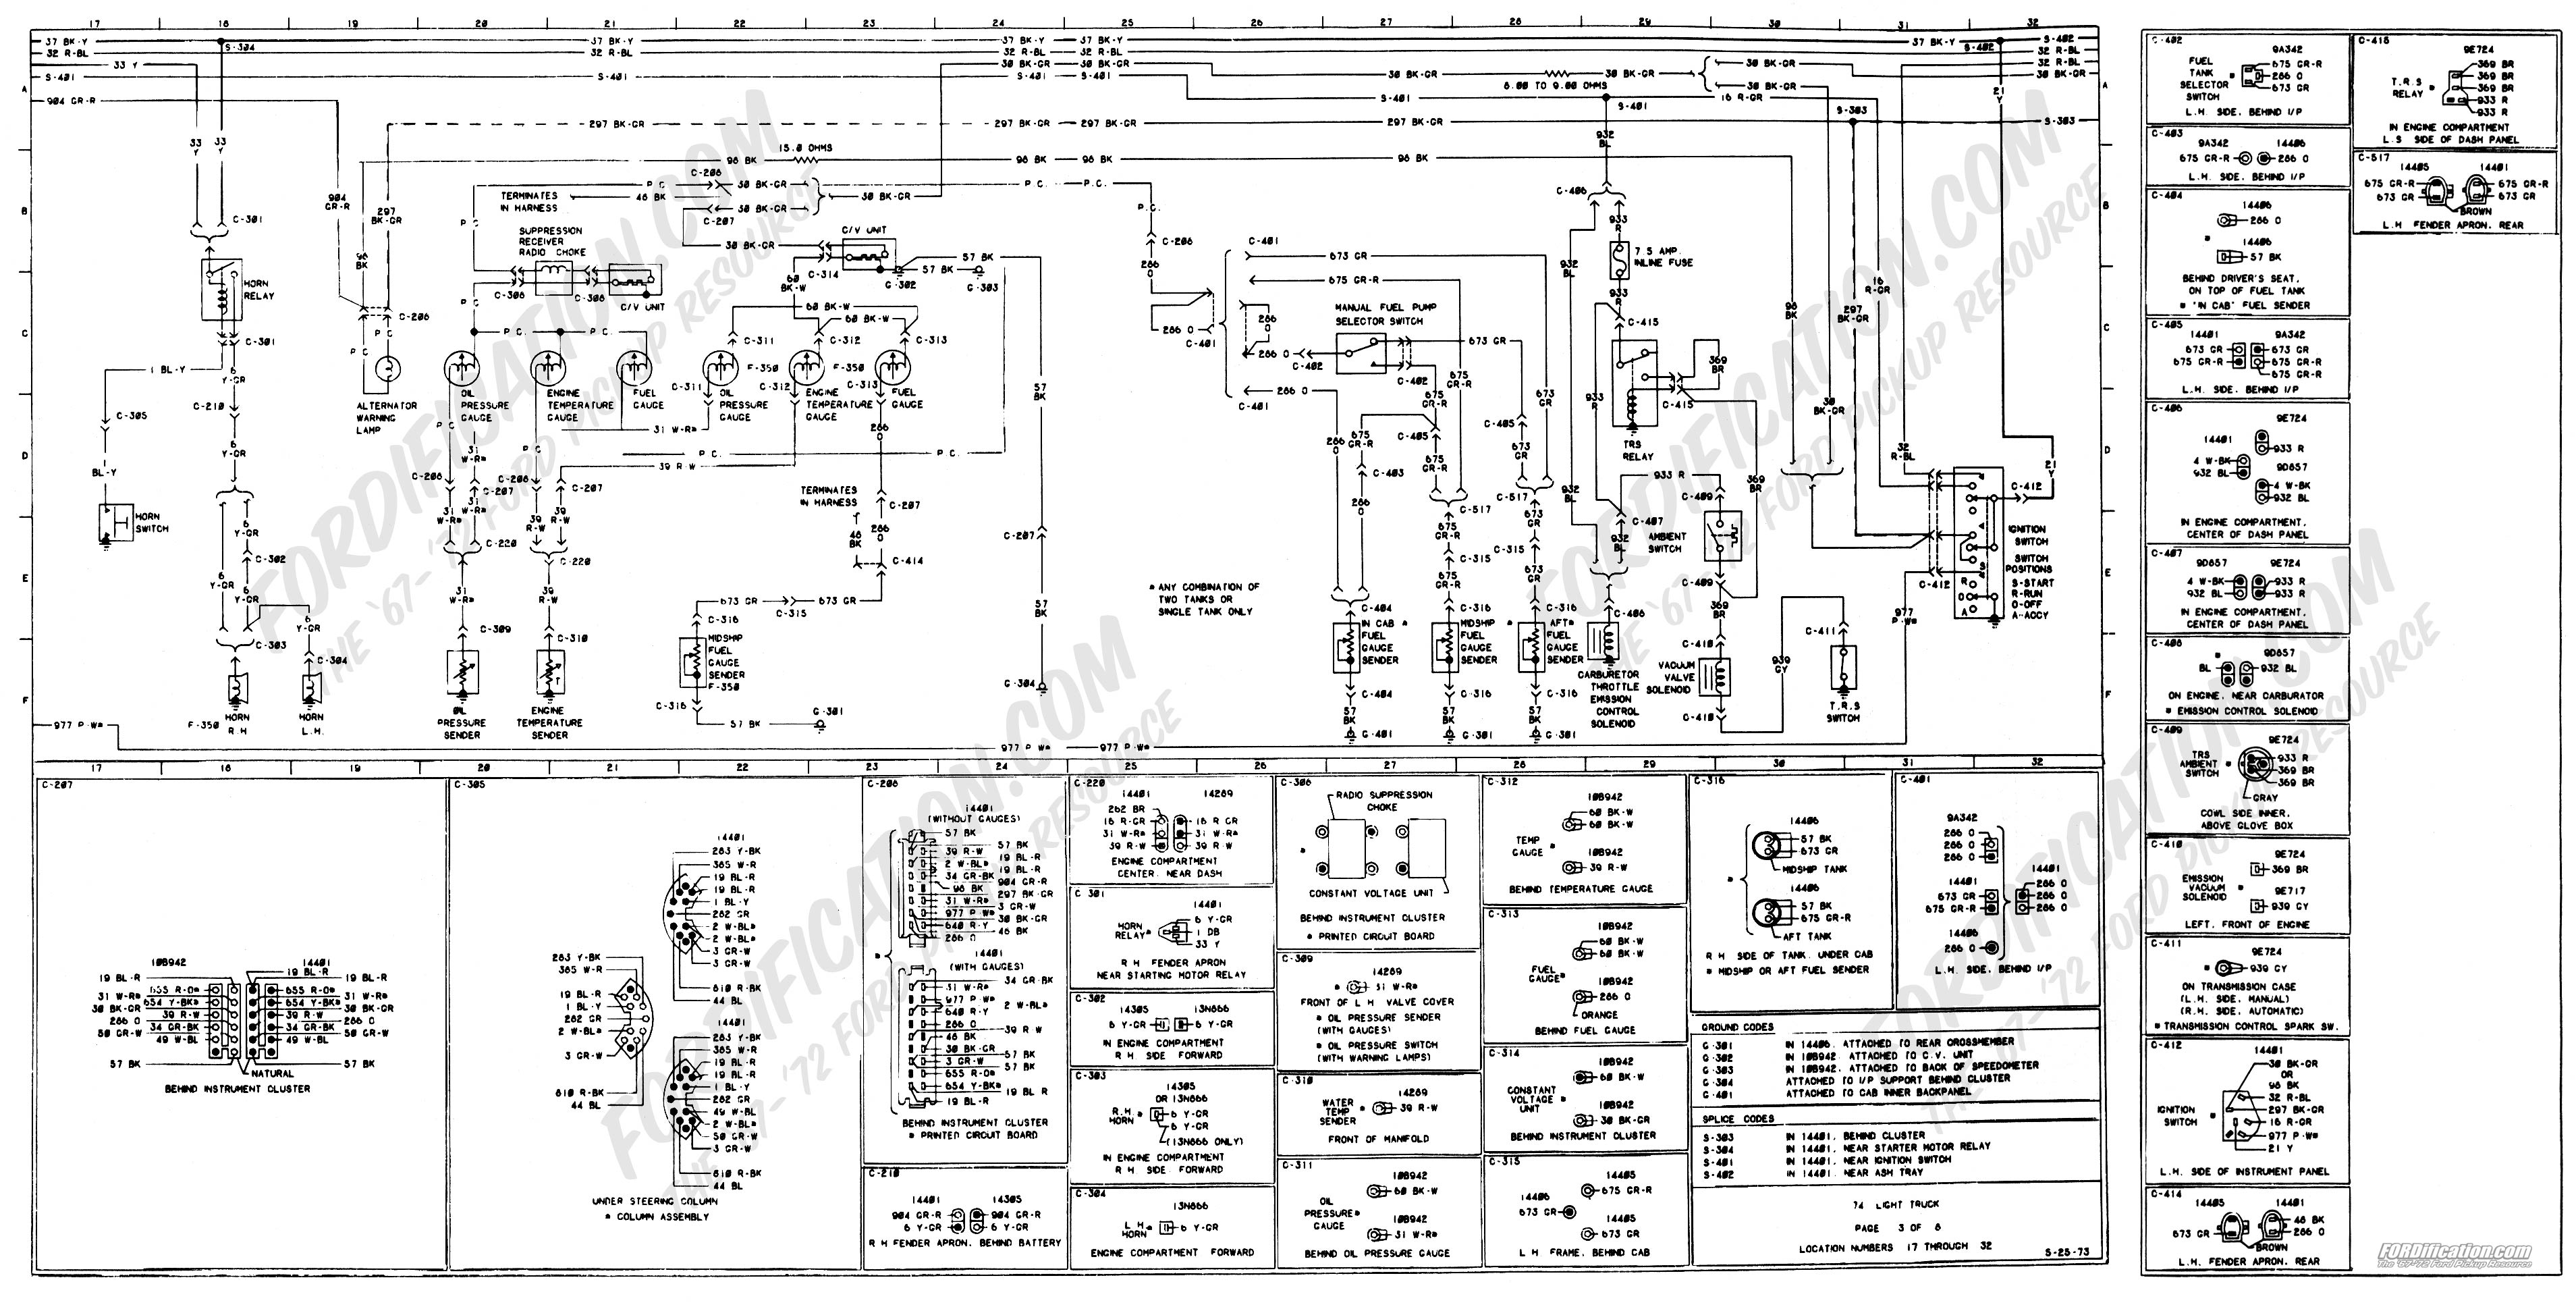 wrg 1822] 91 ford bronco wiring diagram1973 1979 ford truck wiring diagrams \u0026 schematics fordification net 1973 glastron wiring diagram 1973 ford